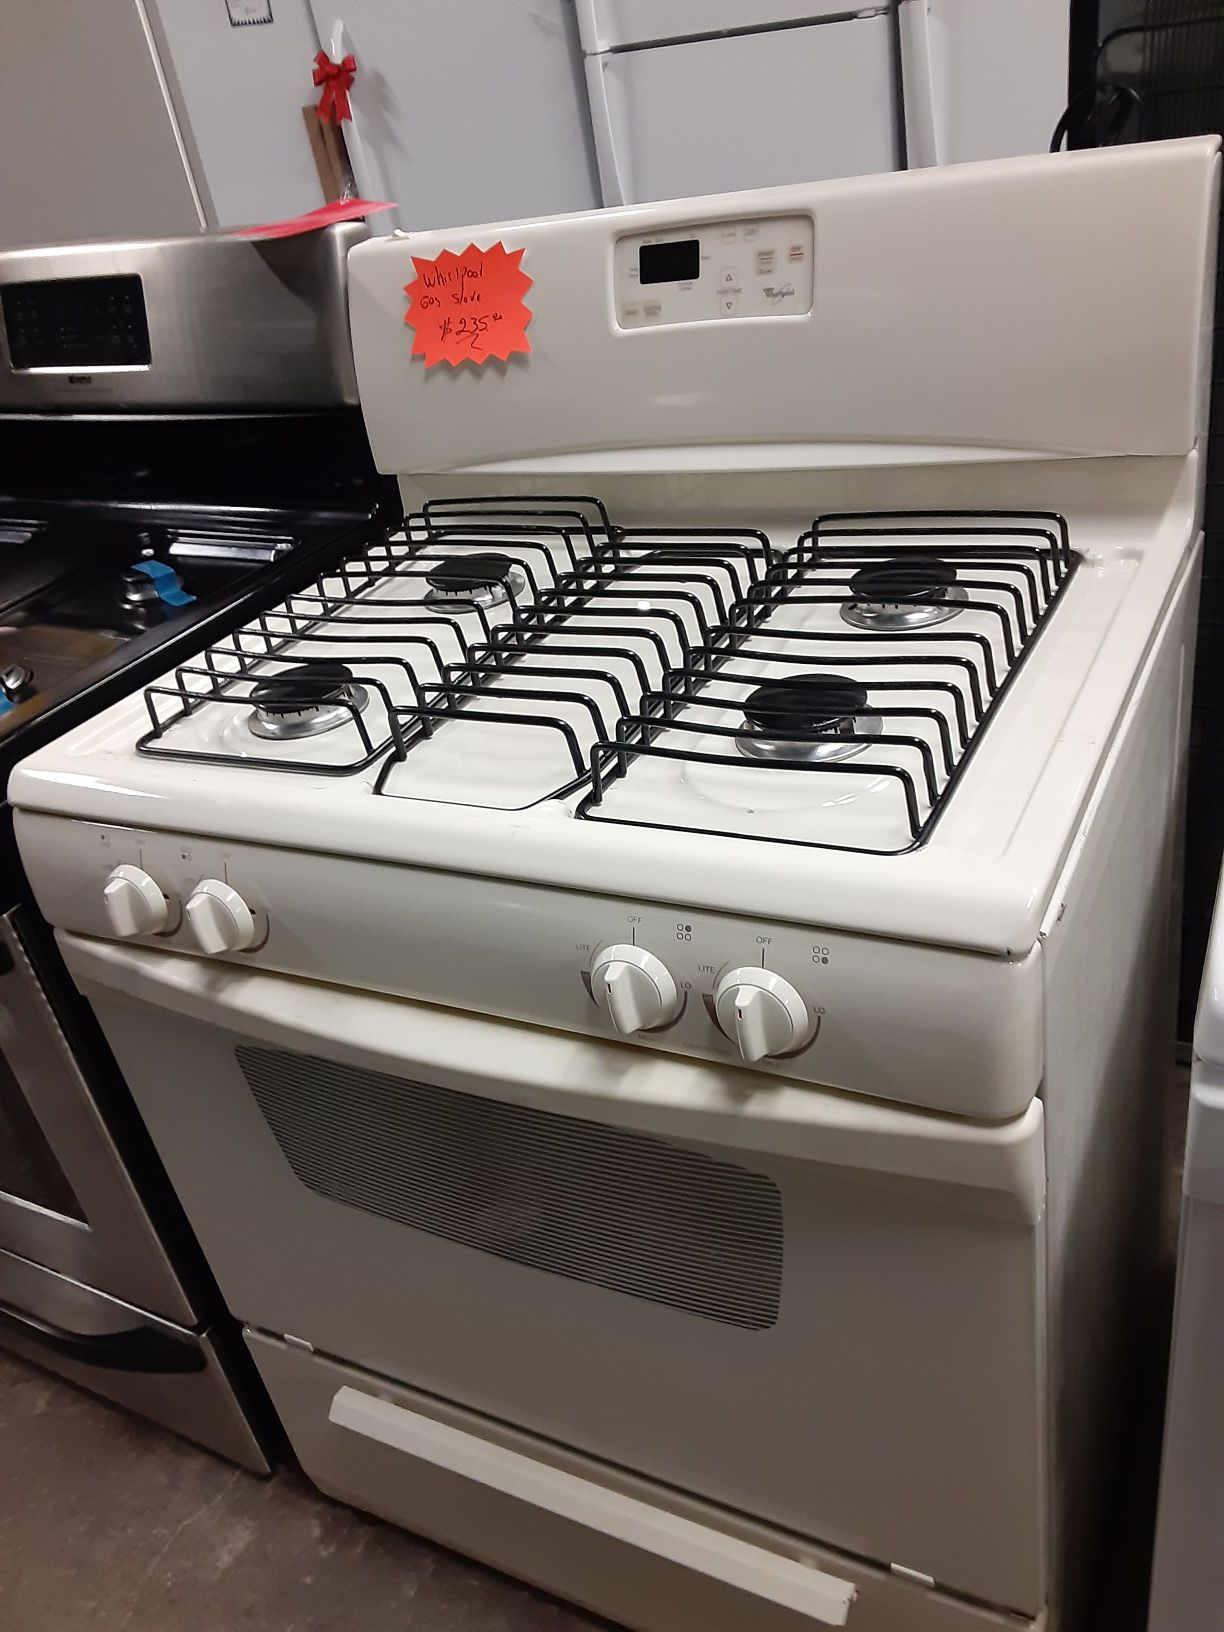 WHIRLPOOL GAS STOVE WORKING PERFECTLY 4 MONTHS WARRANTY